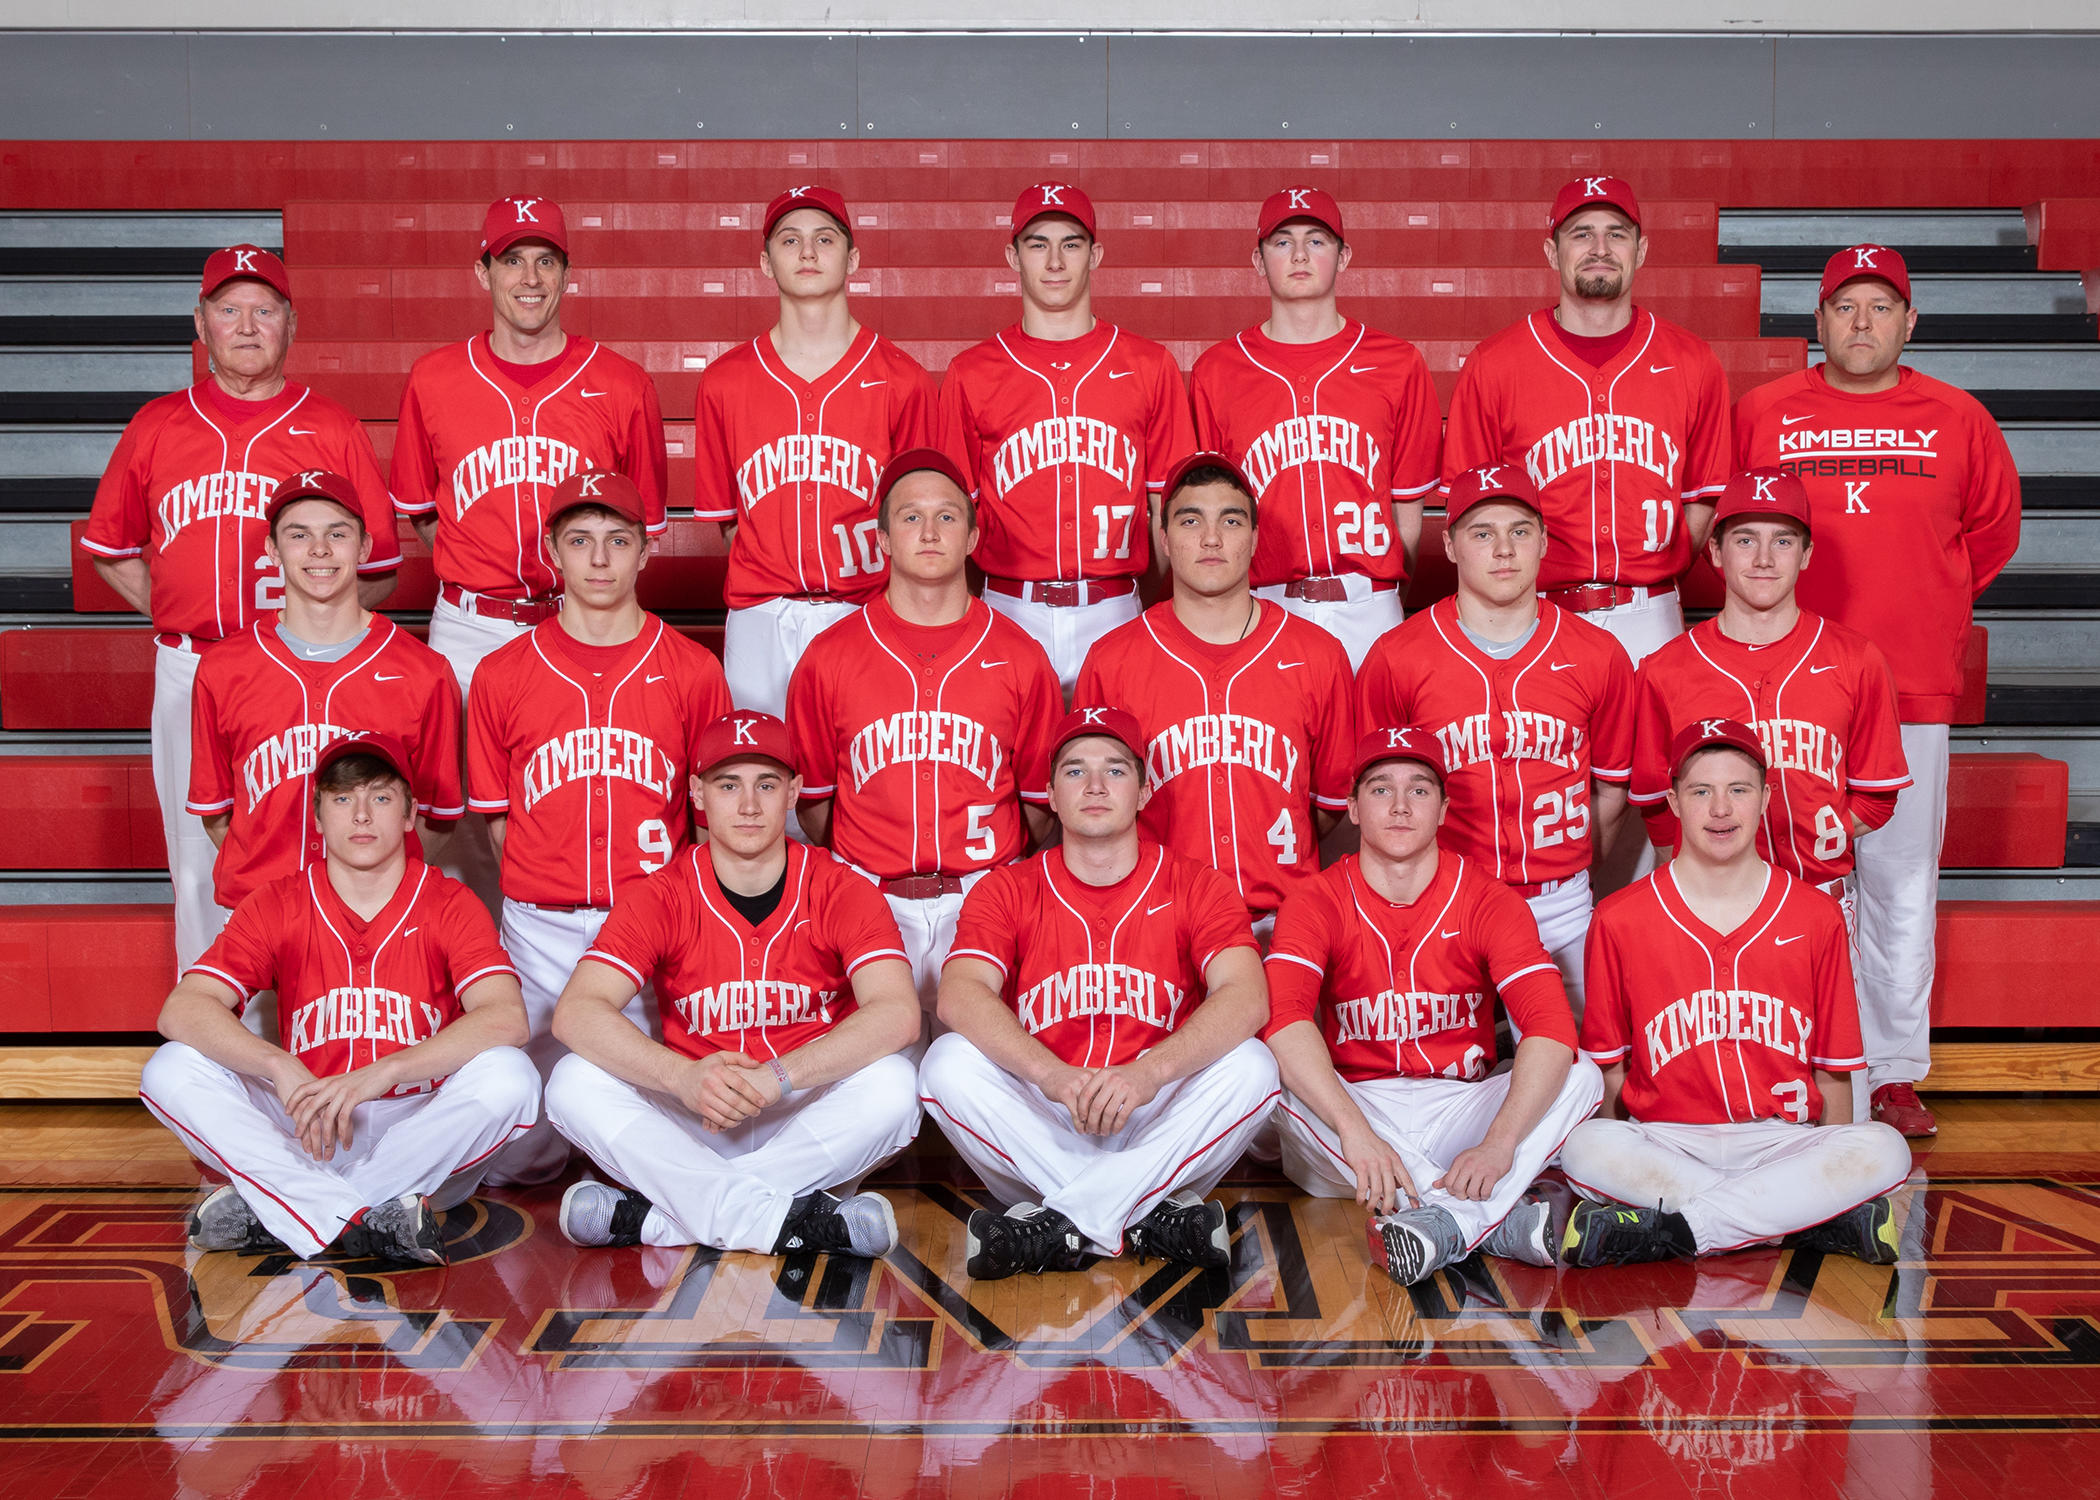 Kimberly Varsity Baseball Picture